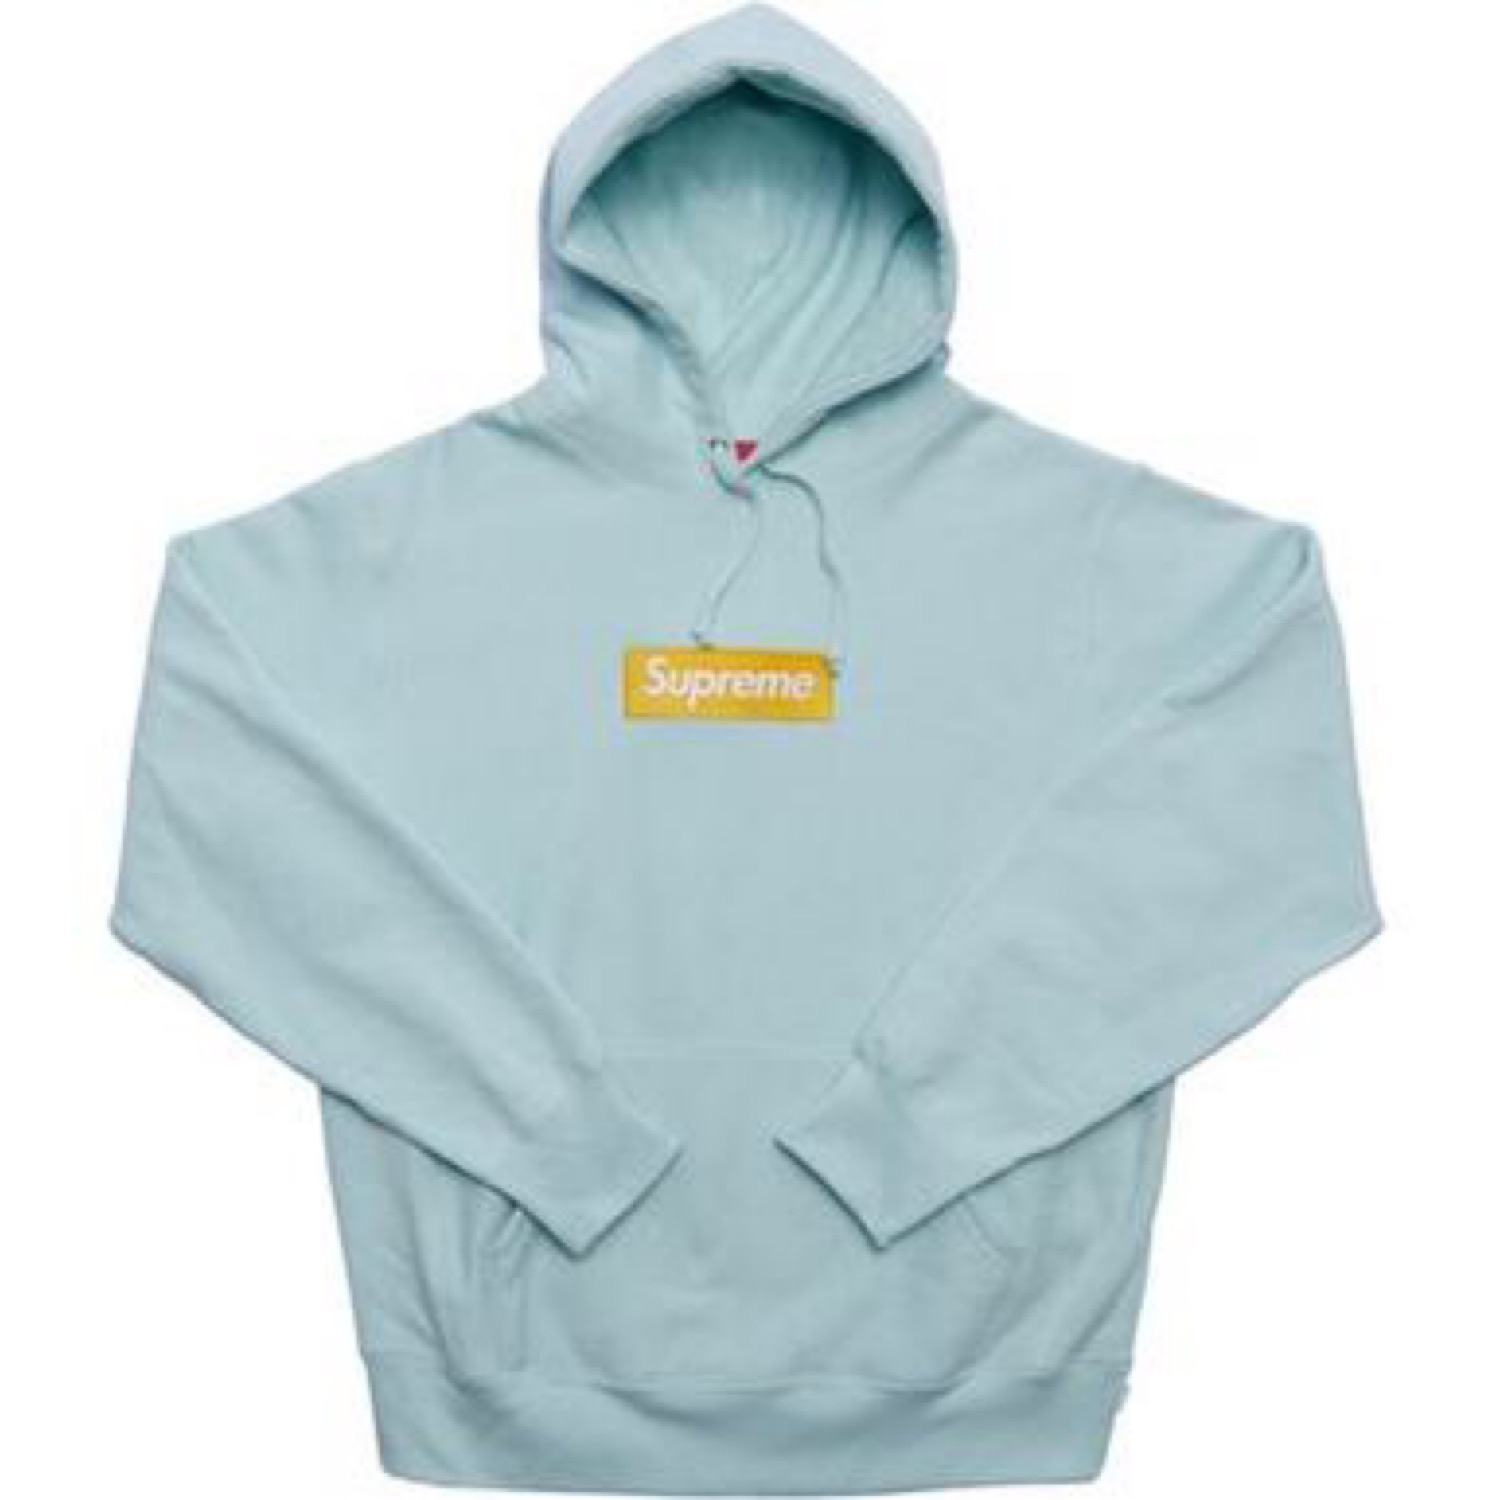 Supreme Box Logo Sweatshirt Baby Blue